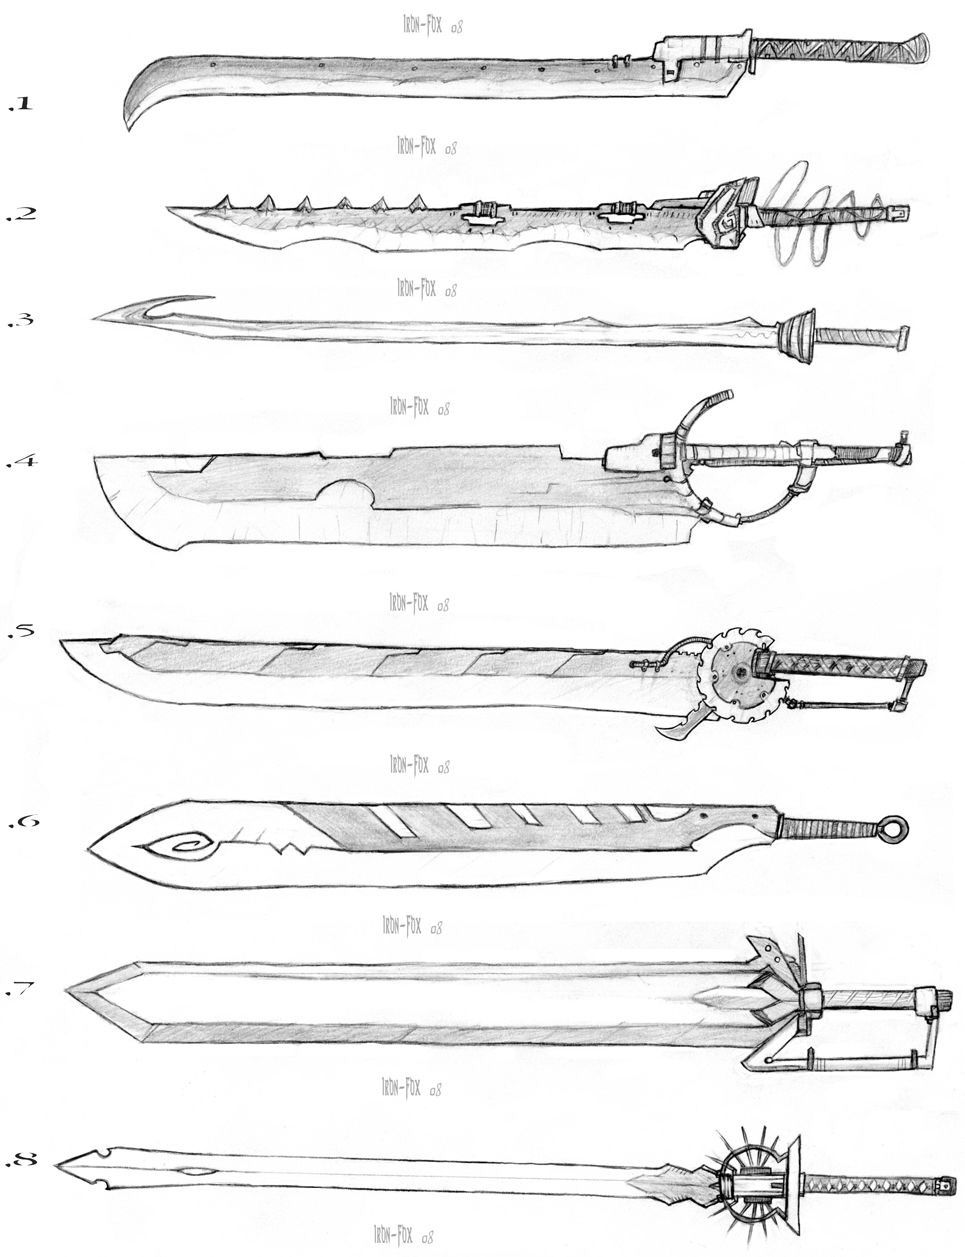 Sword reference drawing reference knife drawing sword design cool swords anime